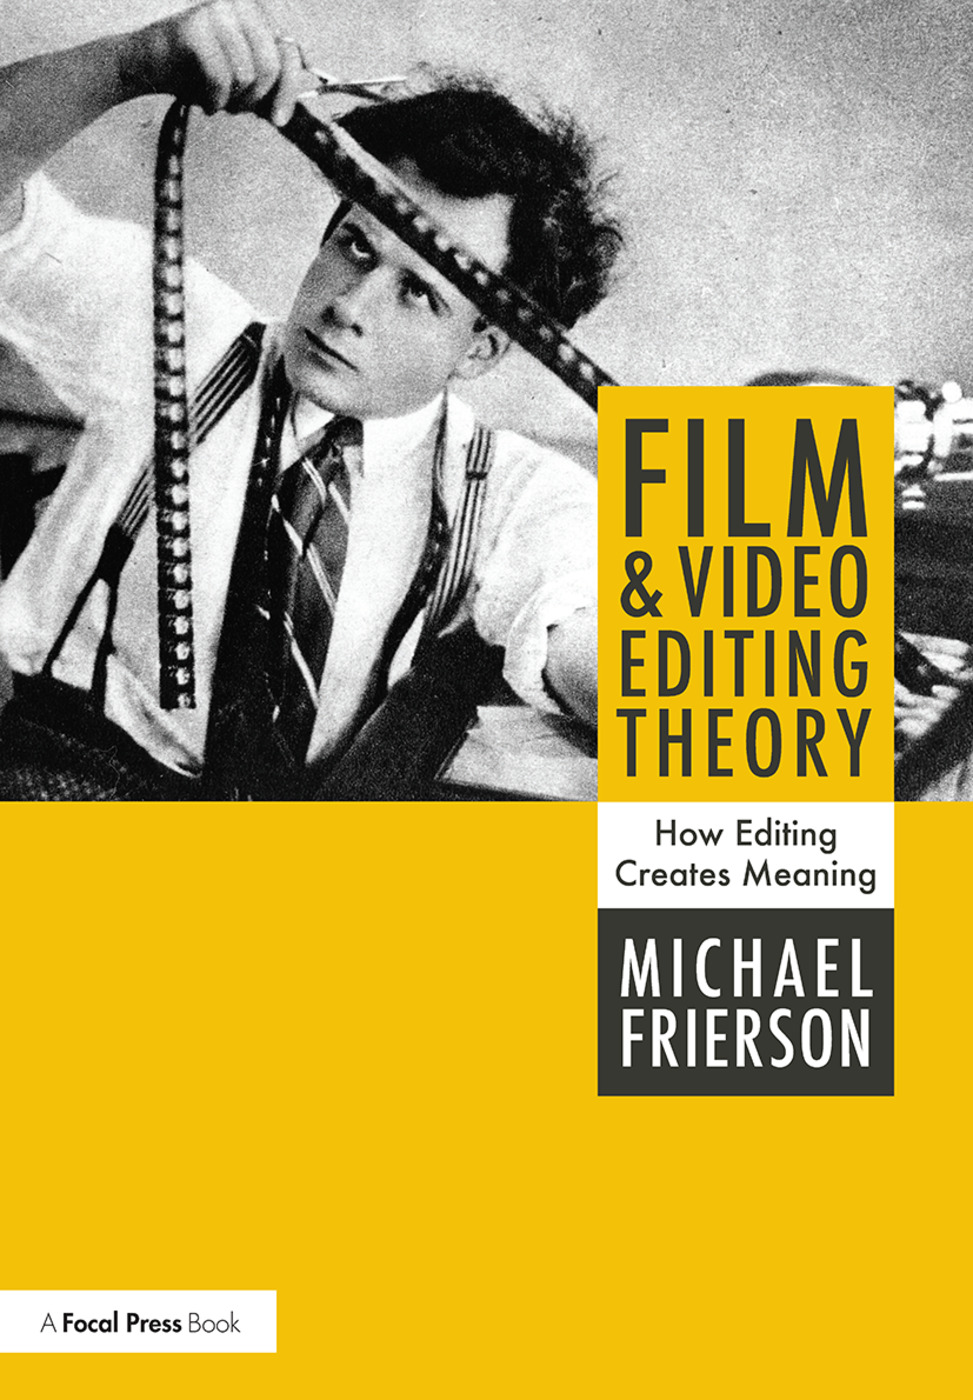 Film and Video Editing Theory: How Editing Creates Meaning book cover